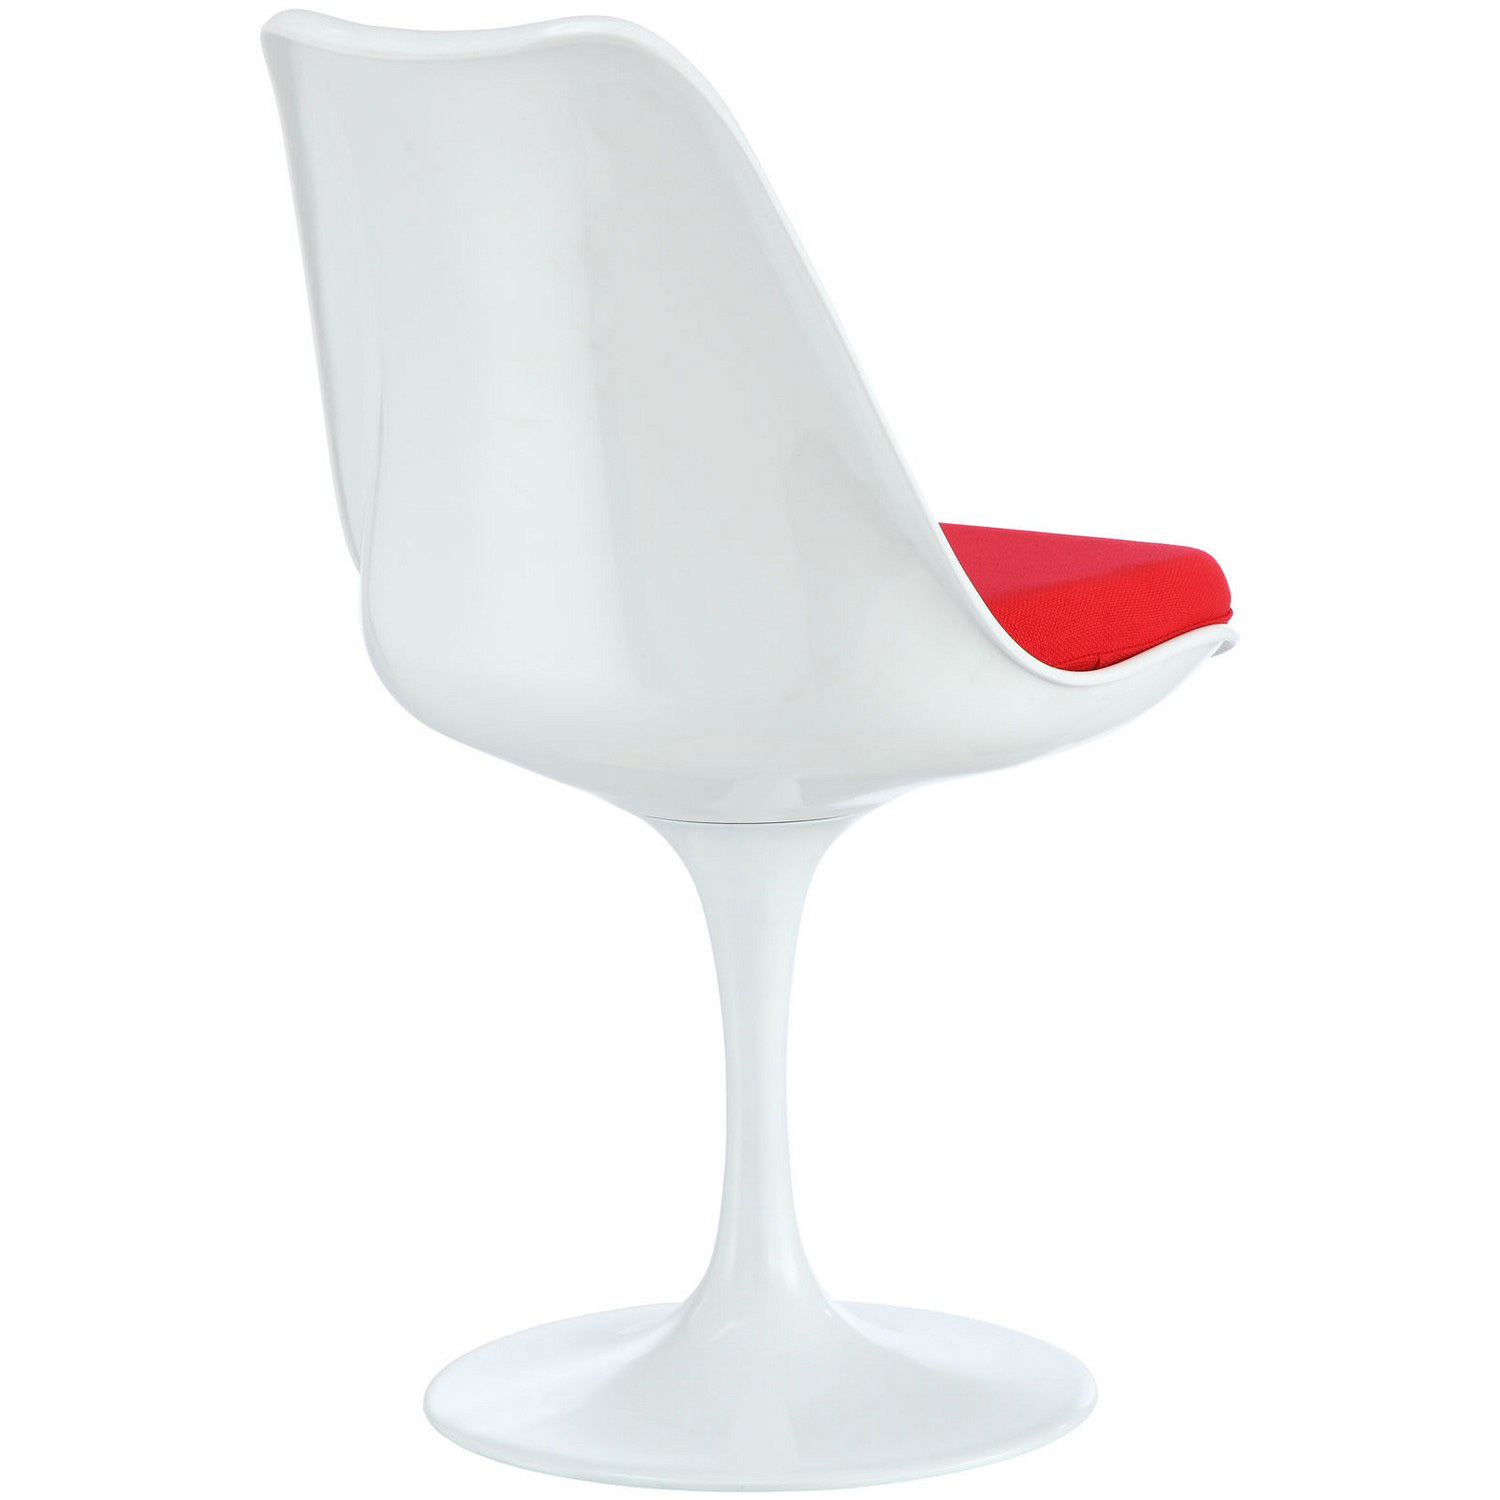 Modway Lippa Dining Fabric Side Chair - Red